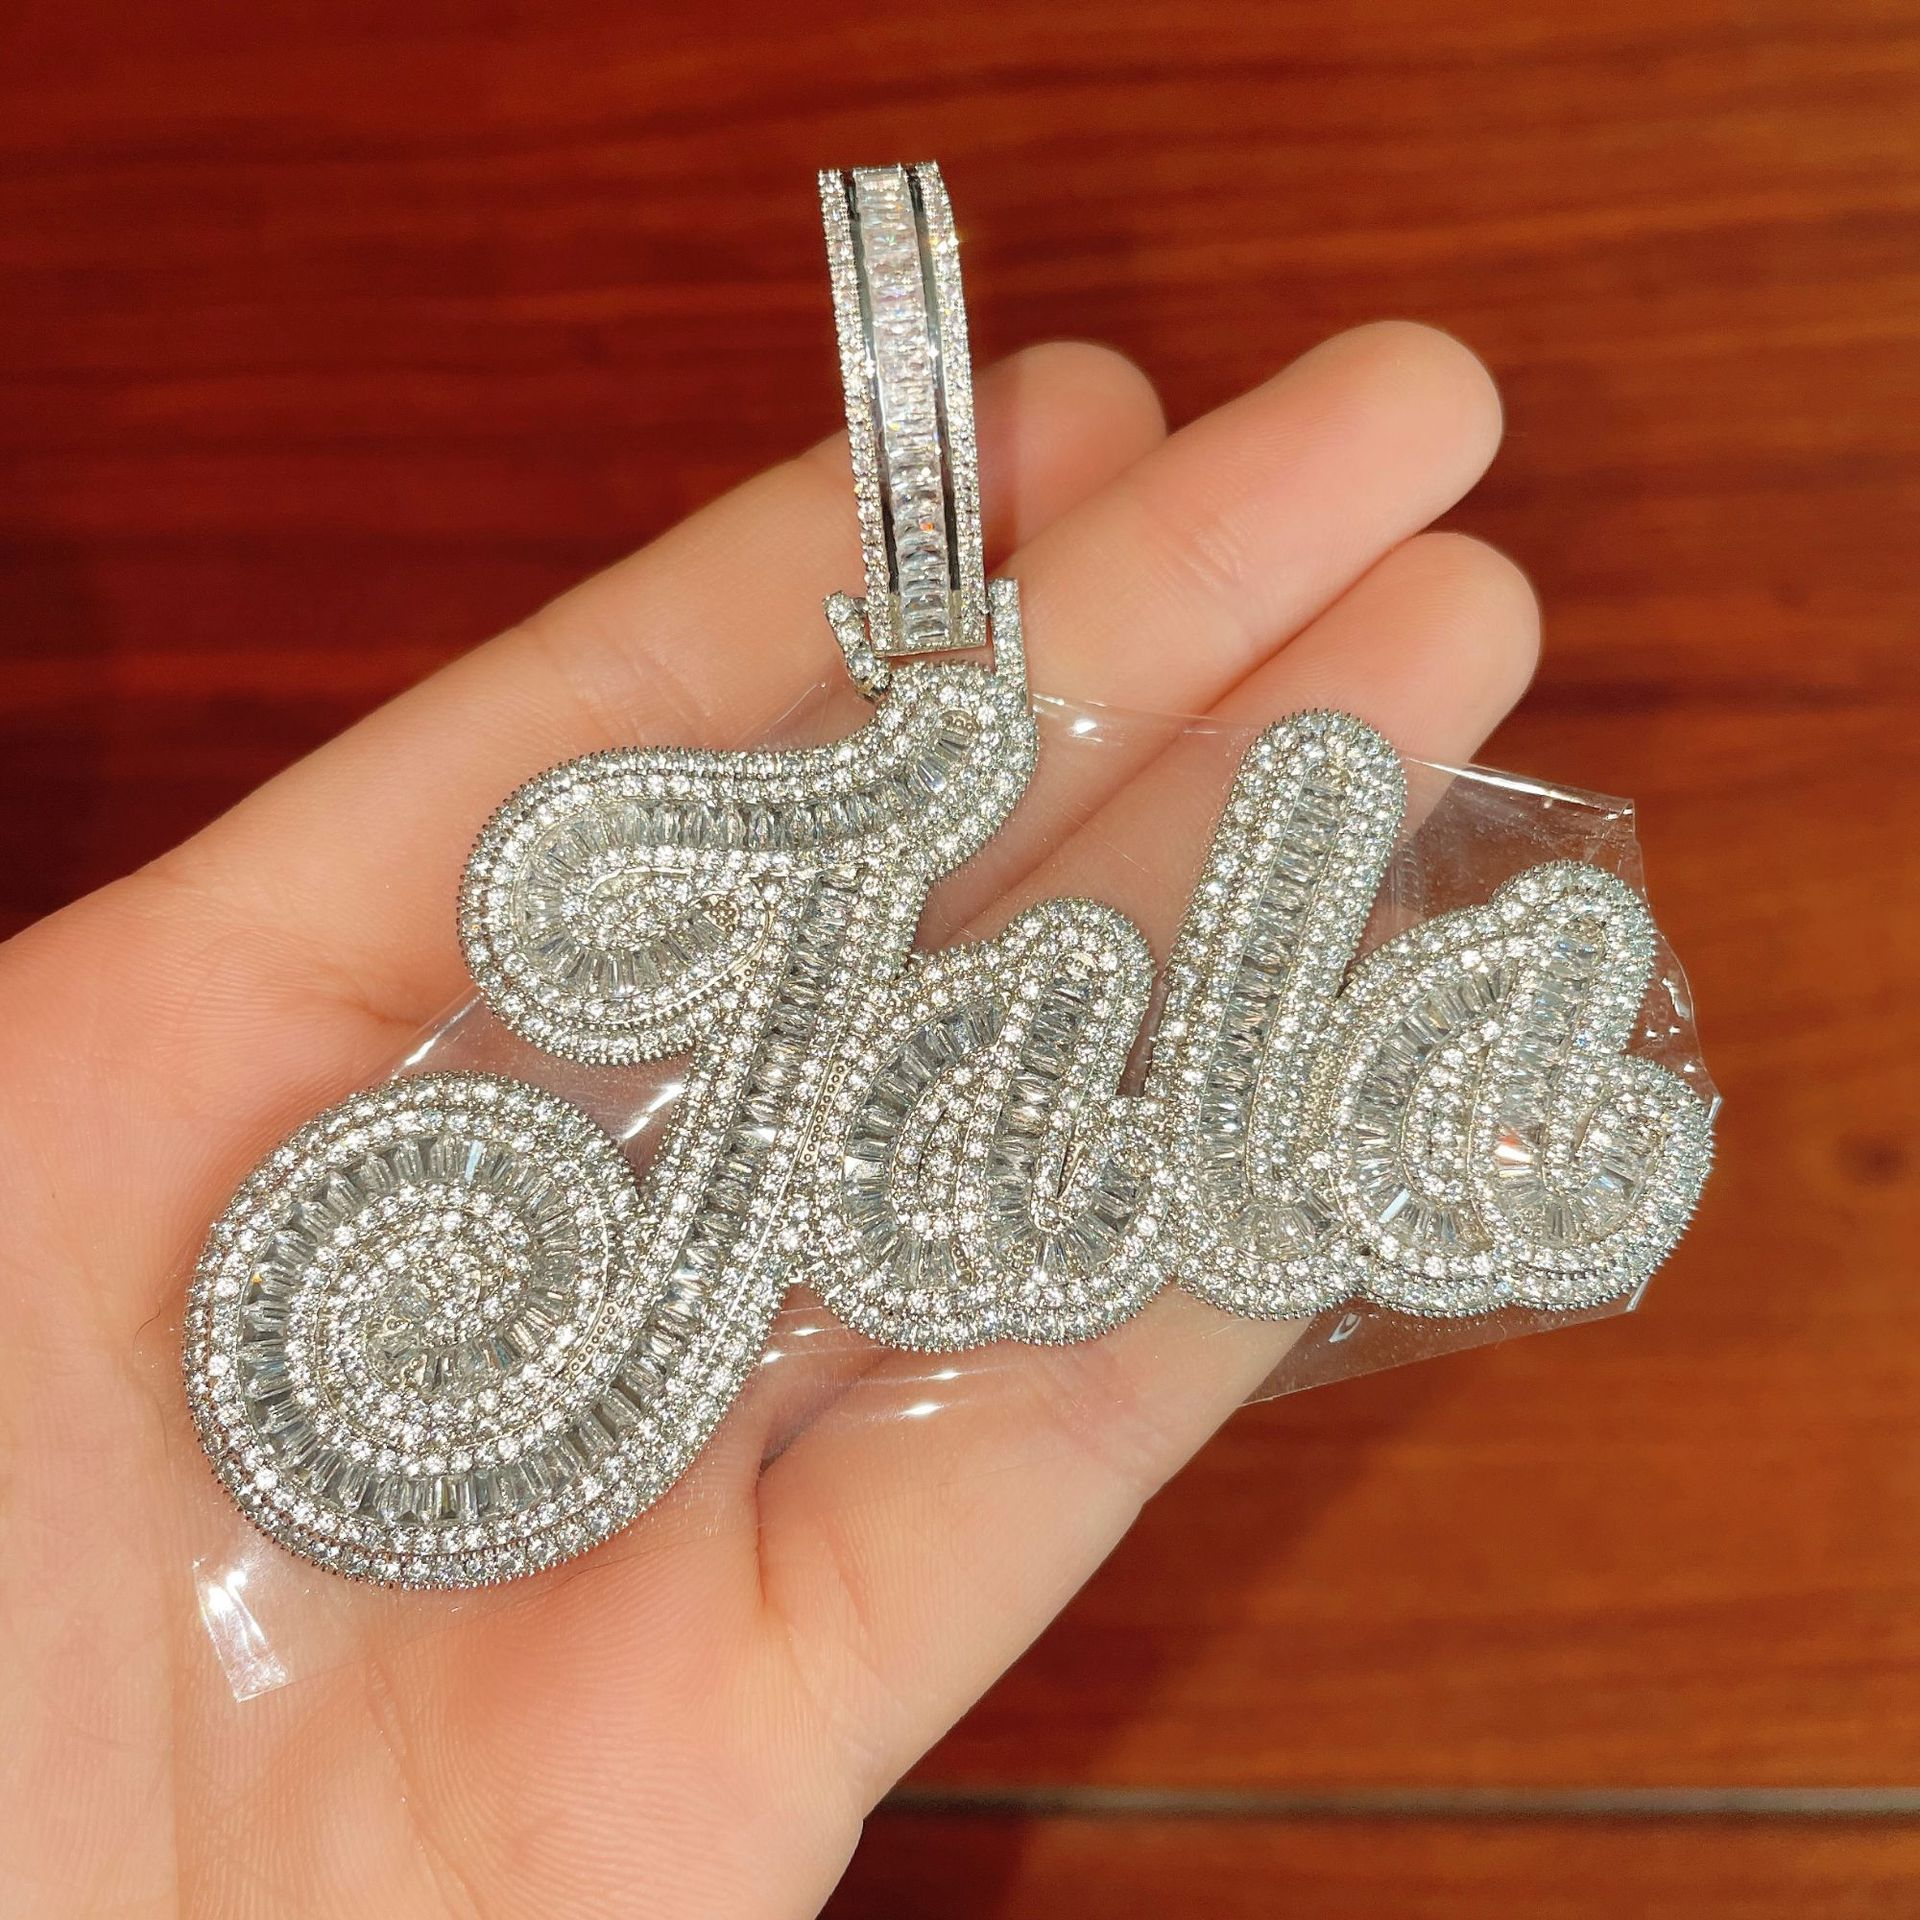 THE BLING KING Custom Baguette Letter Pendant Iced Out Bling Square CZ With 15mm Miami Cuban Chain Necklace Charm Hiphop Jewelry